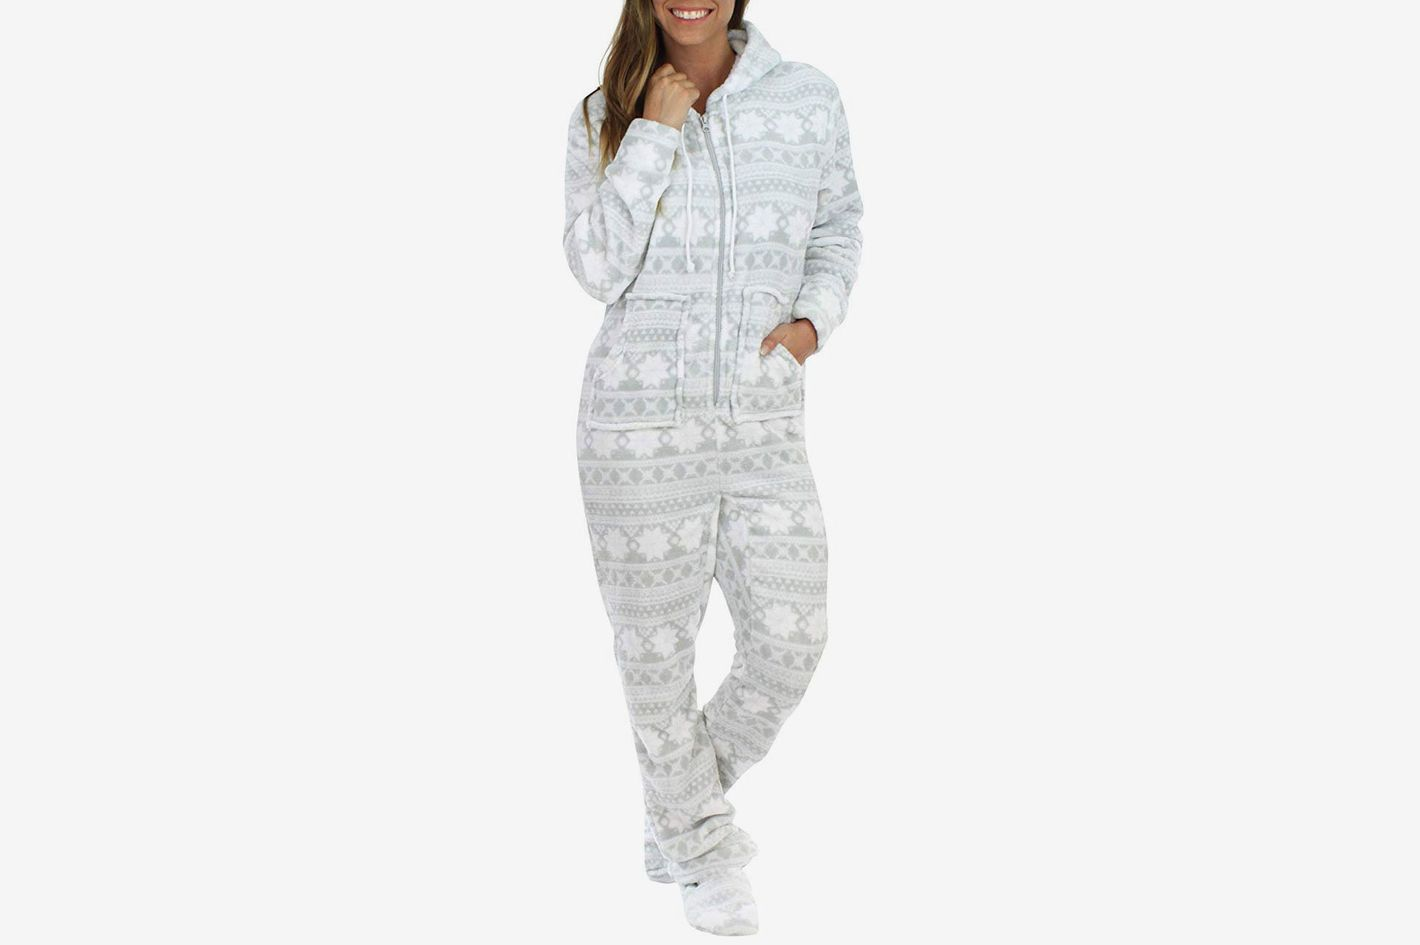 4637b2f22dd7 SleepytimePjs Women s Sleepwear Fleece Hooded Footed Onesie Pajamas